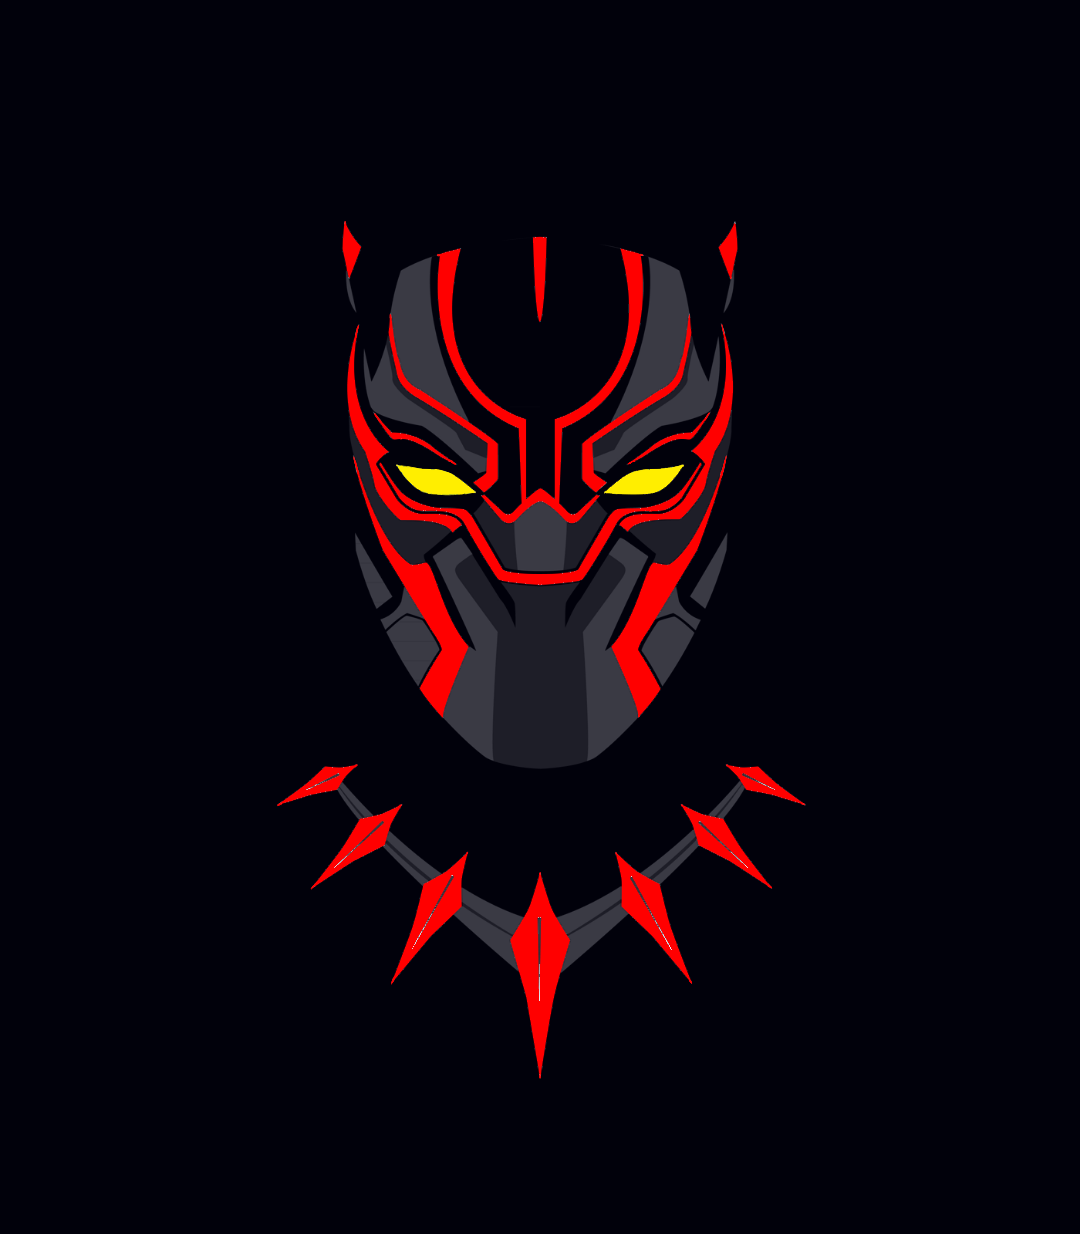 Post Anything From Anywhere Customize Everything And Find And Follow What You Love Create Your Own T Black Panther Marvel Black Panther Black Panther Art